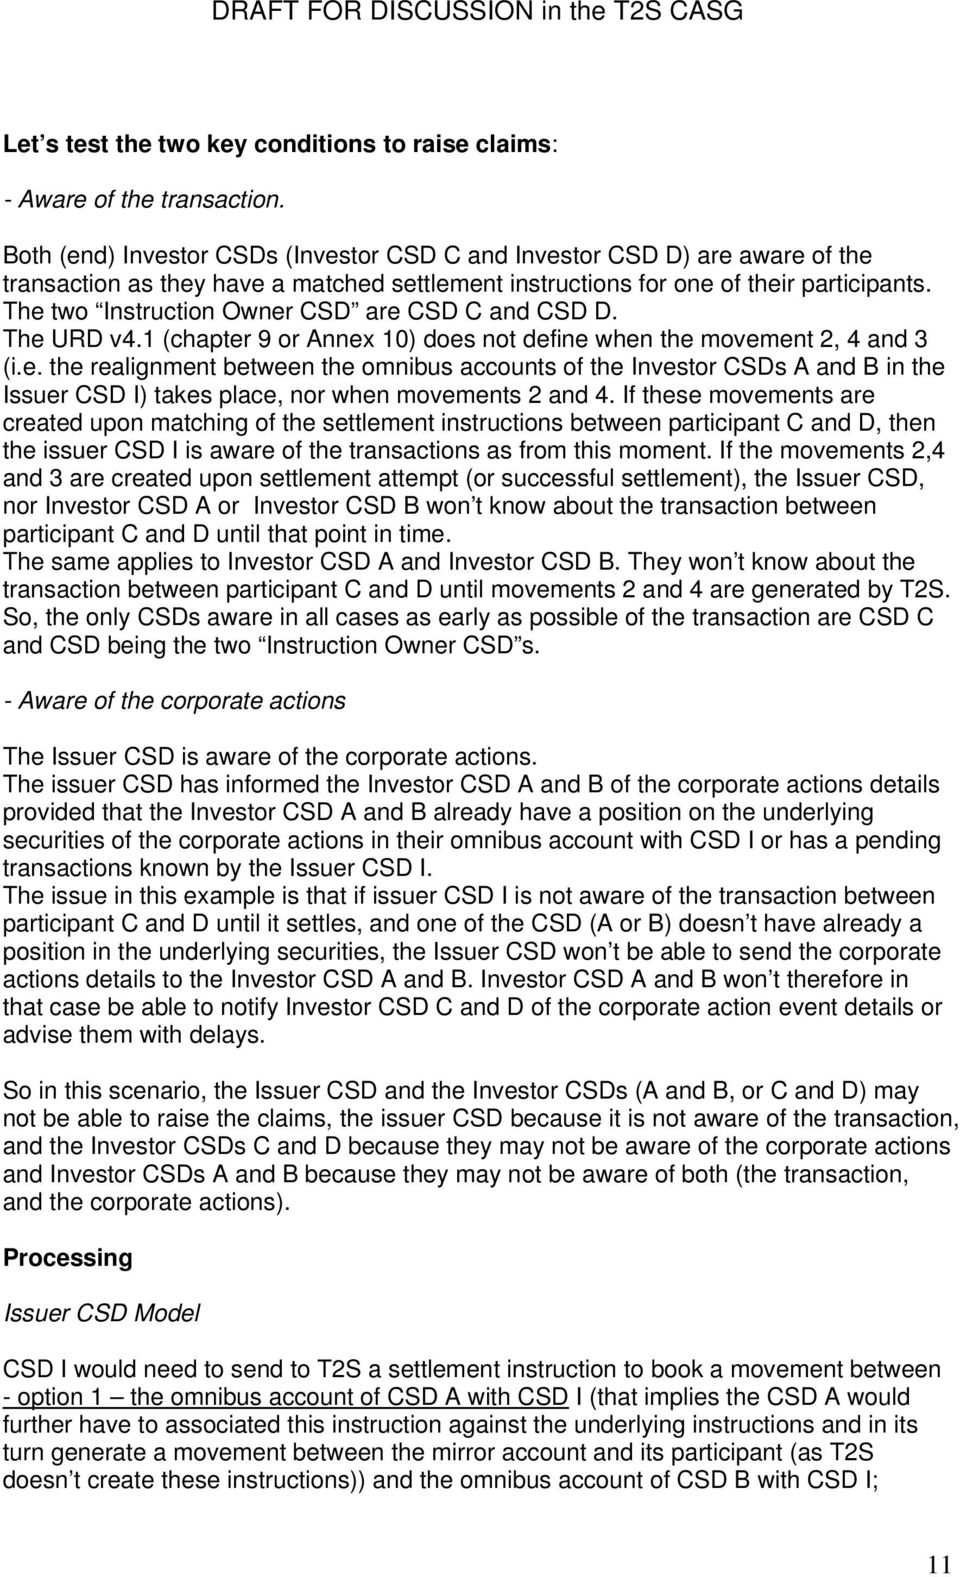 The two Instruction Owner CSD are CSD C and CSD D. The URD v4.1 (chapter 9 or Annex 10) does not define when the movement 2, 4 and 3 (i.e. the realignment between the omnibus accounts of the Investor CSDs A and B in the Issuer CSD I) takes place, nor when movements 2 and 4.